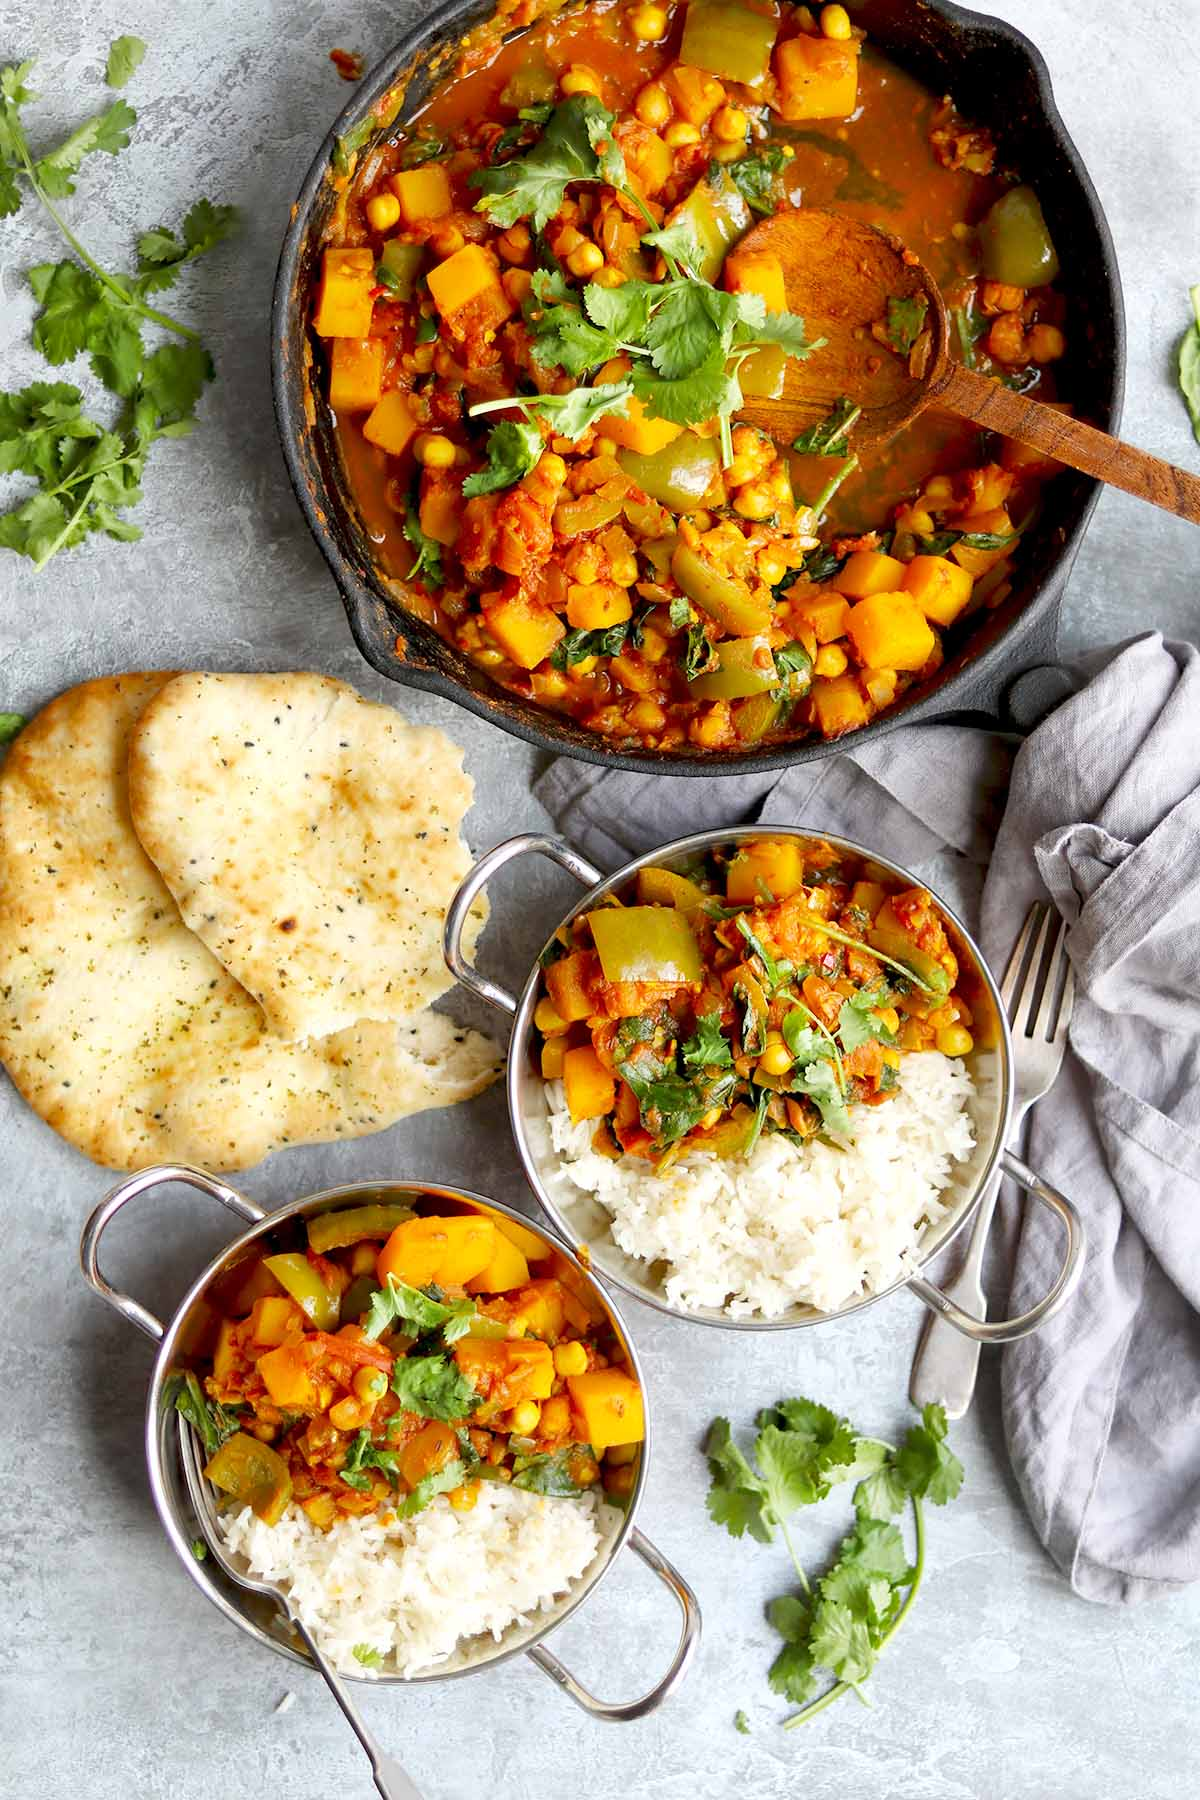 Butternut squash, chickpeas with coriander, rice and naan bread